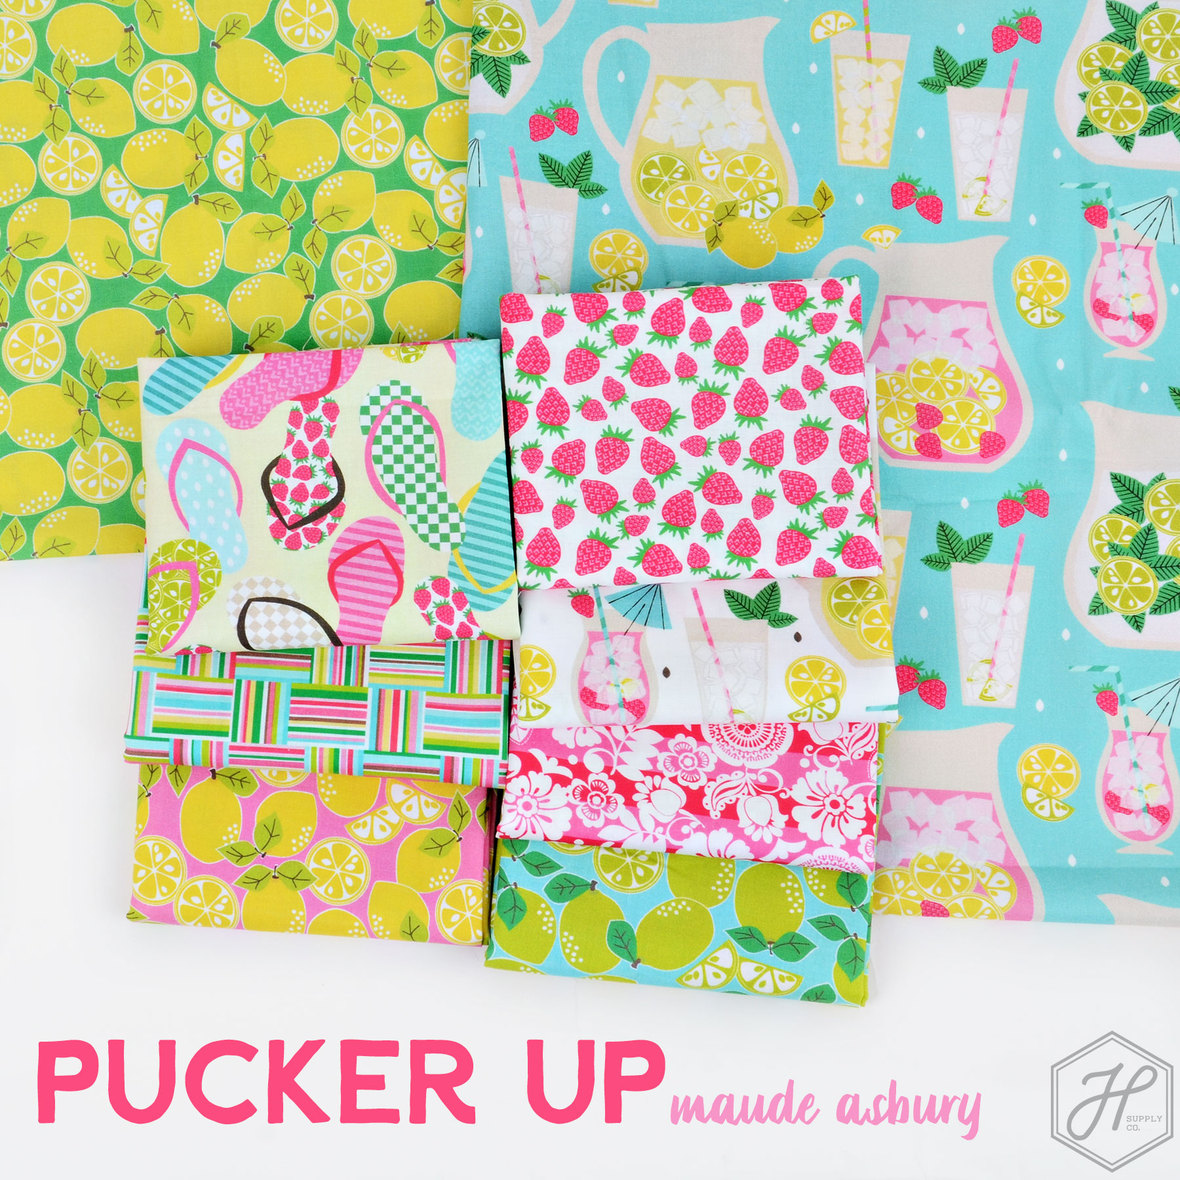 Pucker-Up-fabric-Maude-Asbury-for-Blend-at-Hawthorne-Supply-Co